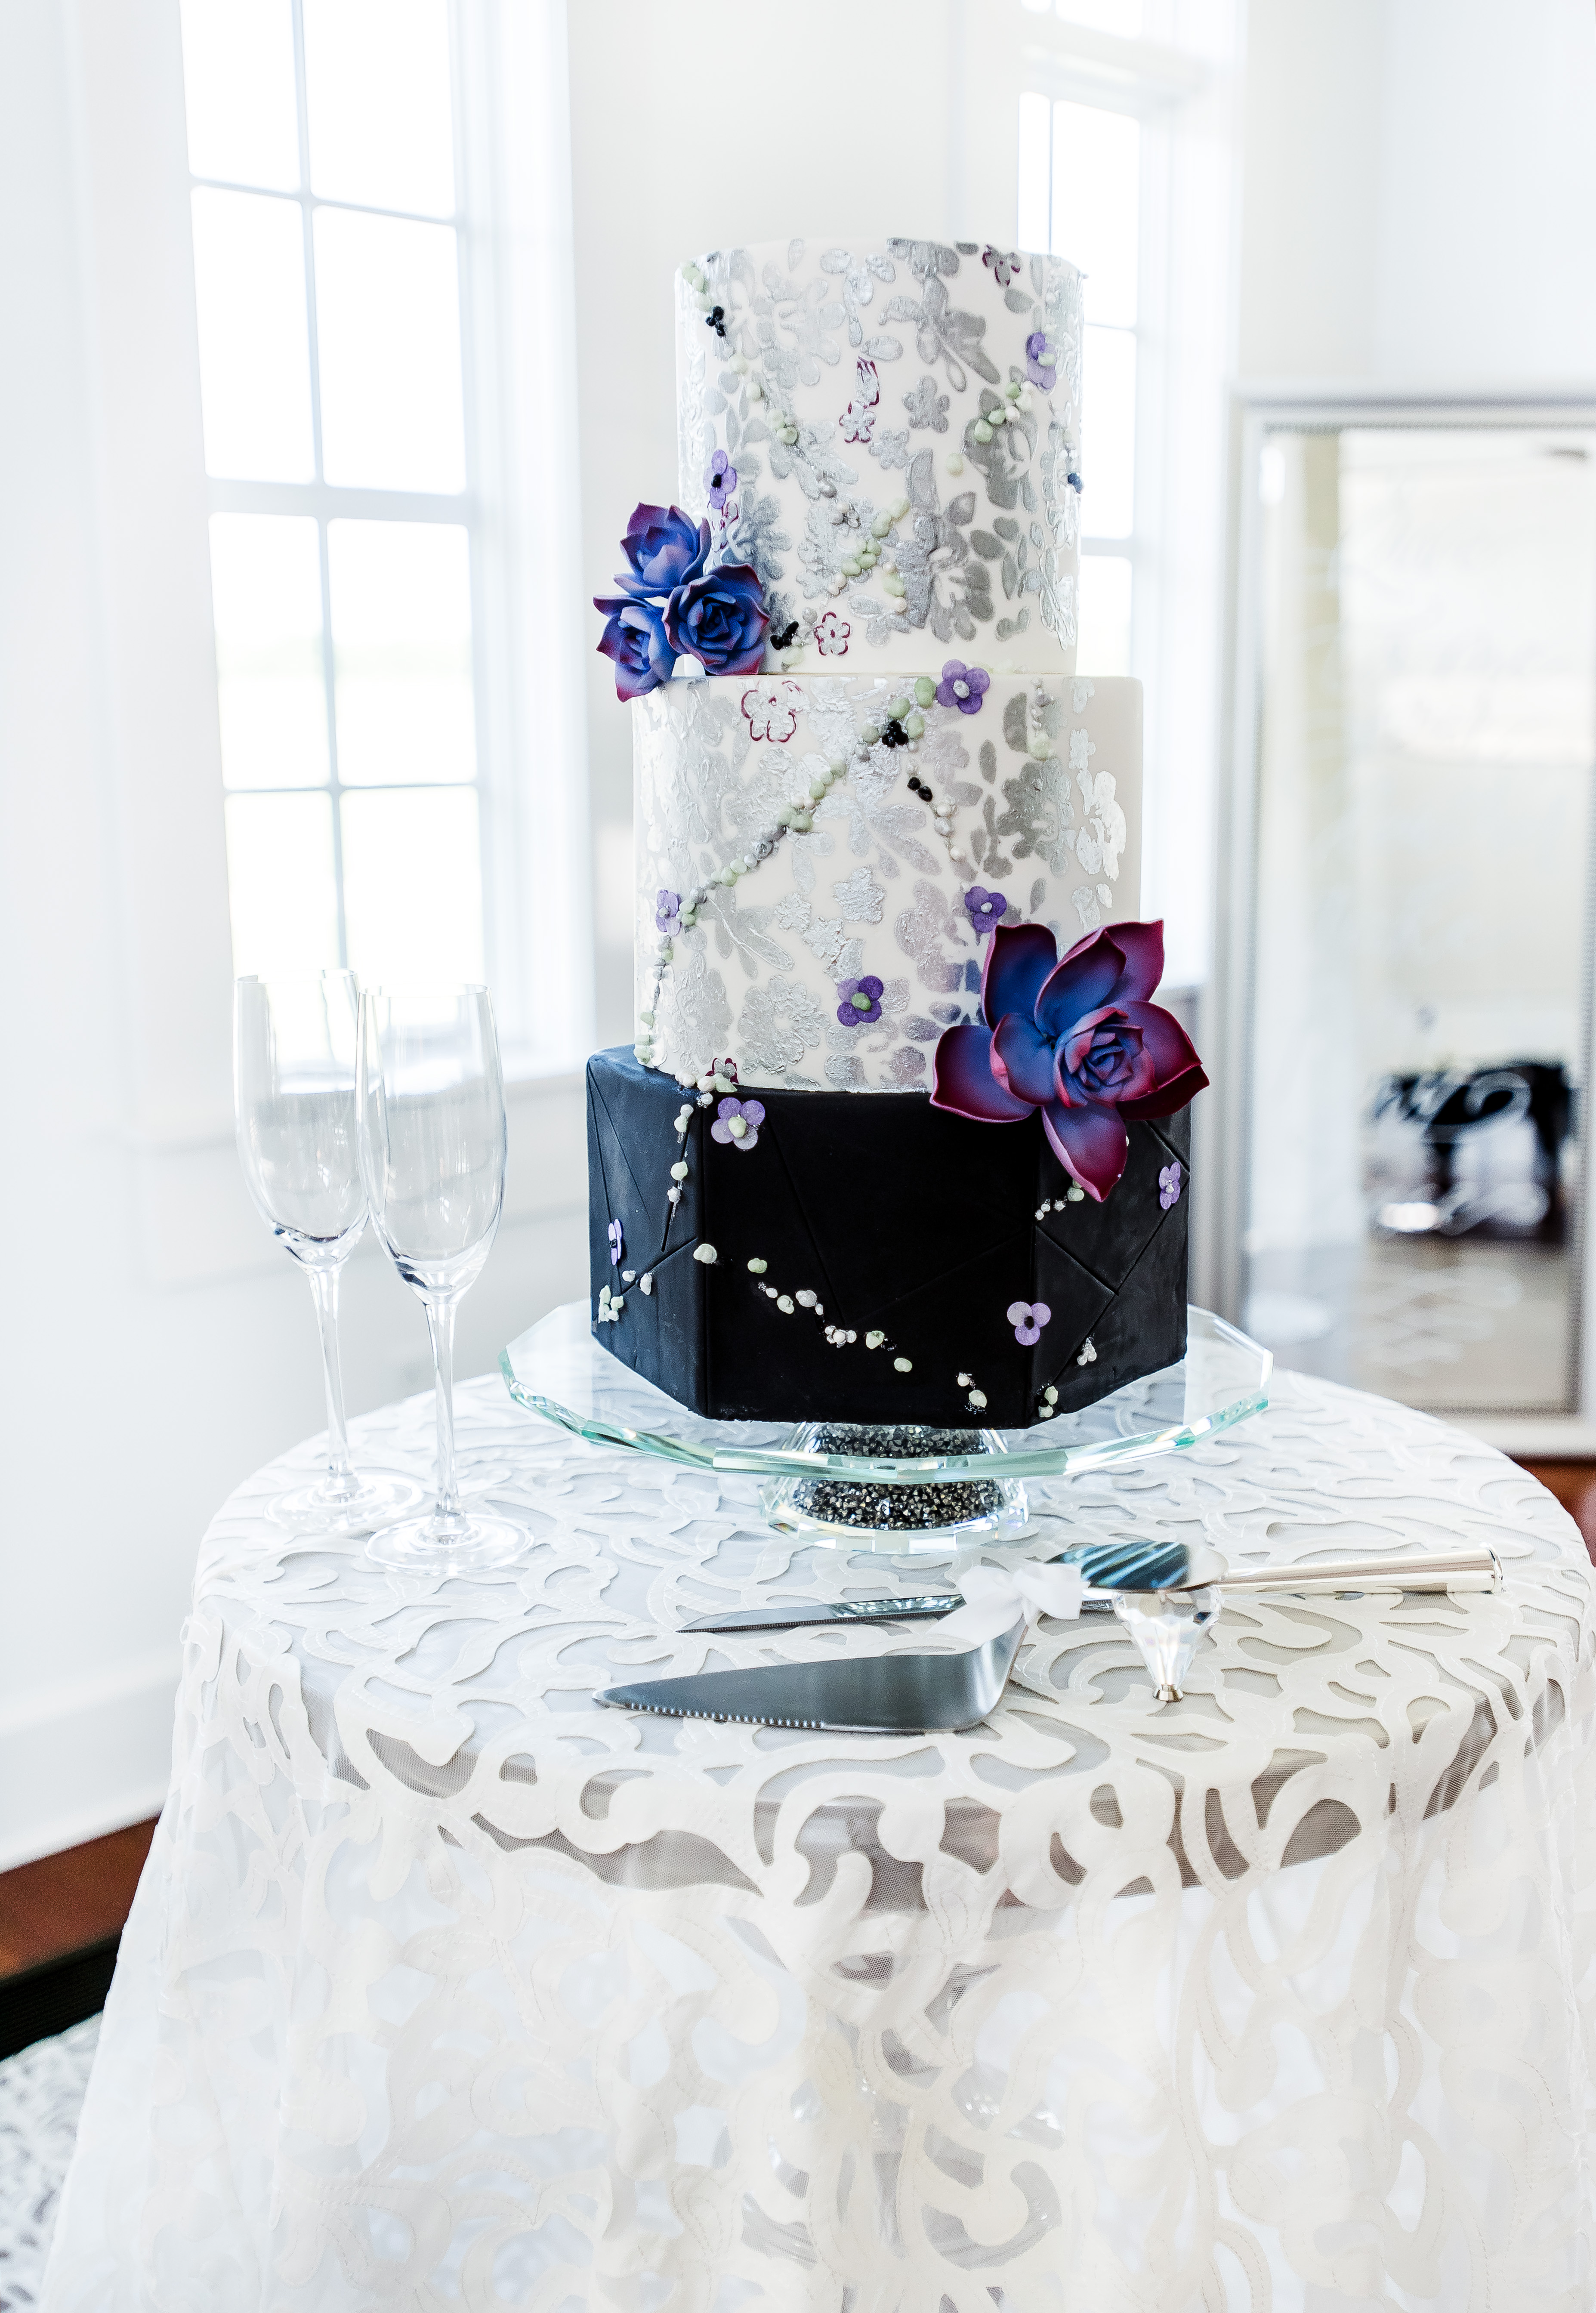 Black and white wedding cake with silver hand painted flowers